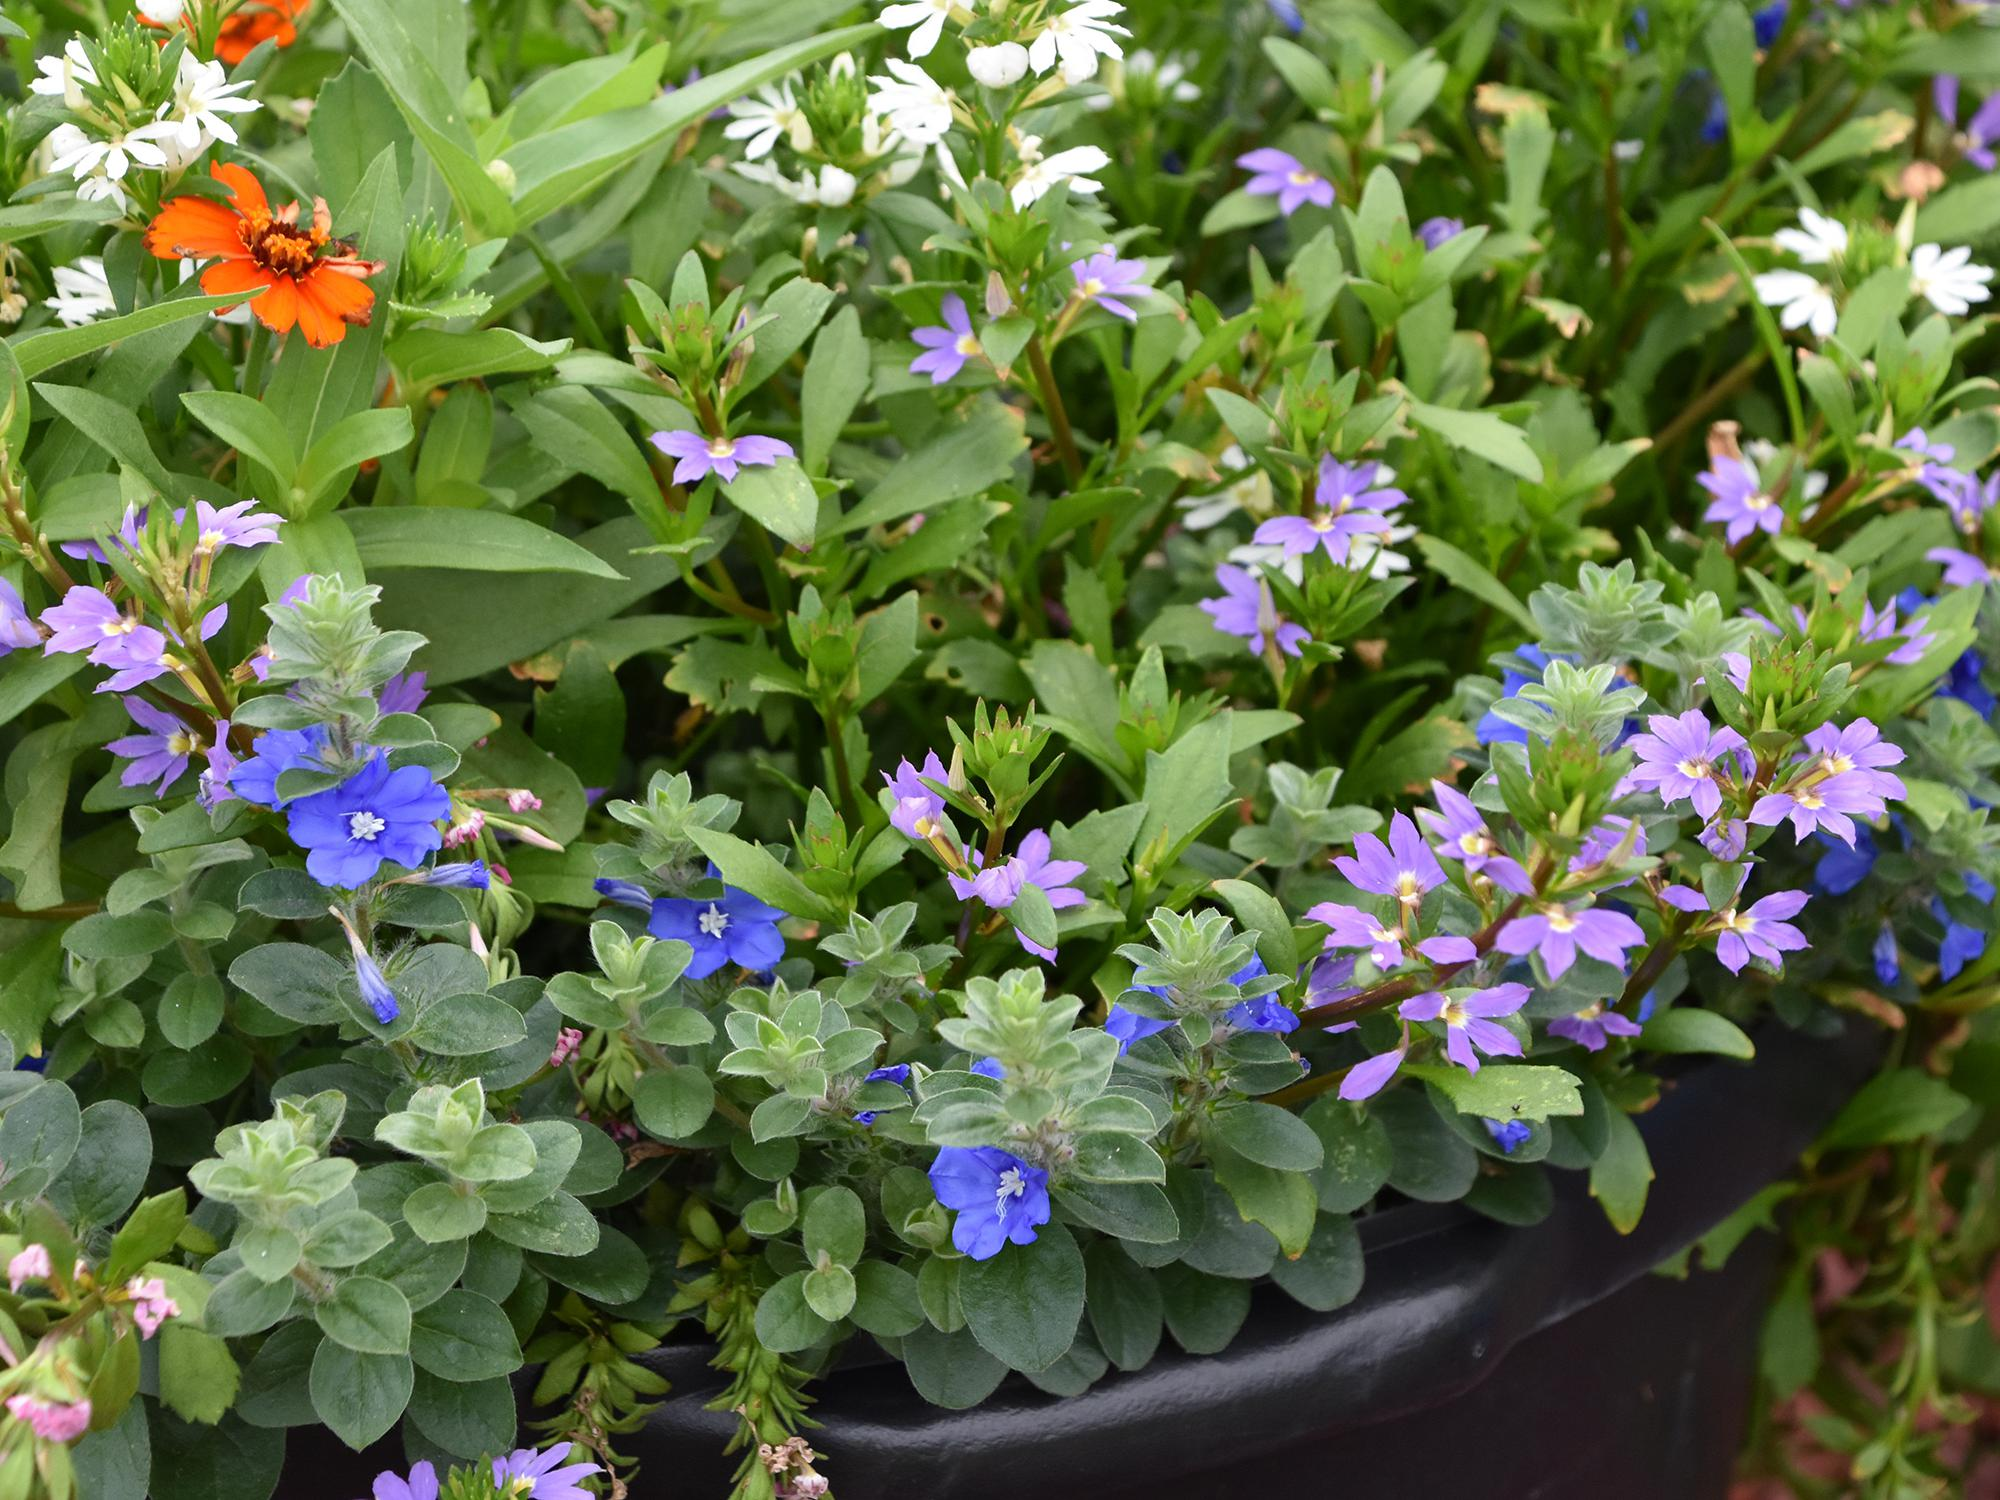 Scaevola – Tiny purple, white and orange flowers can be seen among a mass of green leaves.